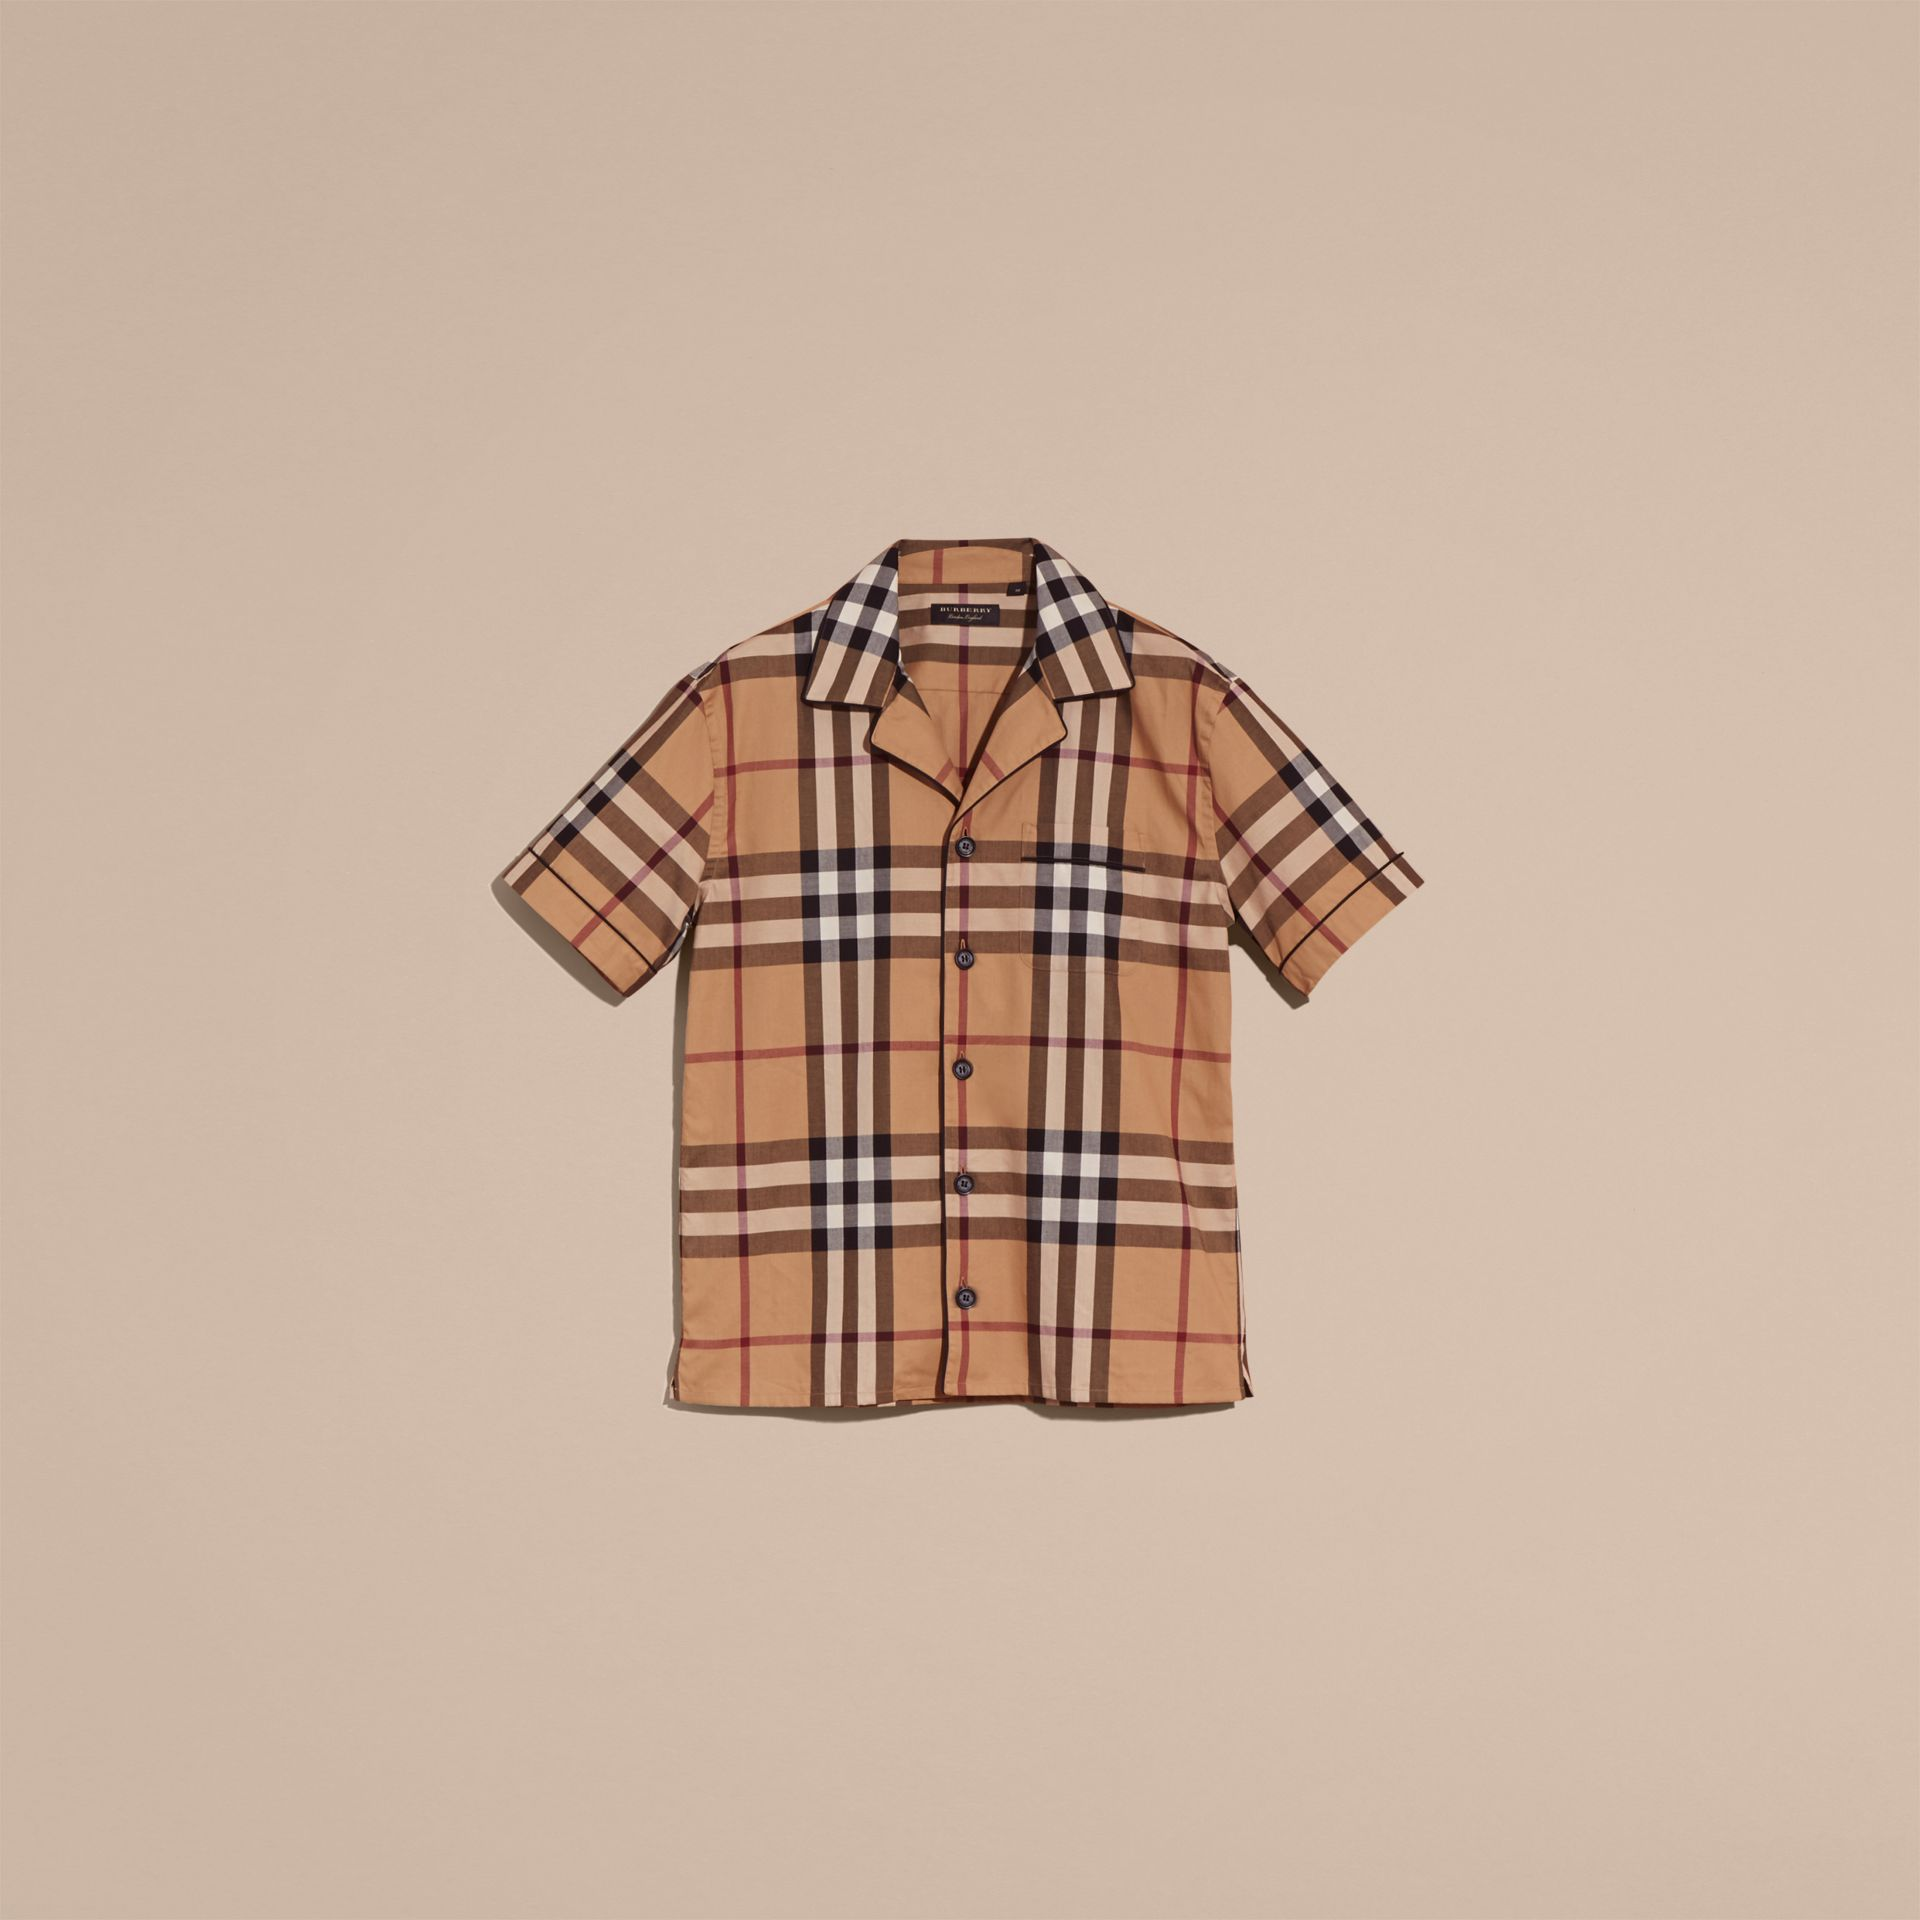 Camel Short-sleeved Check Cotton Pyjama-style Shirt Camel - gallery image 4